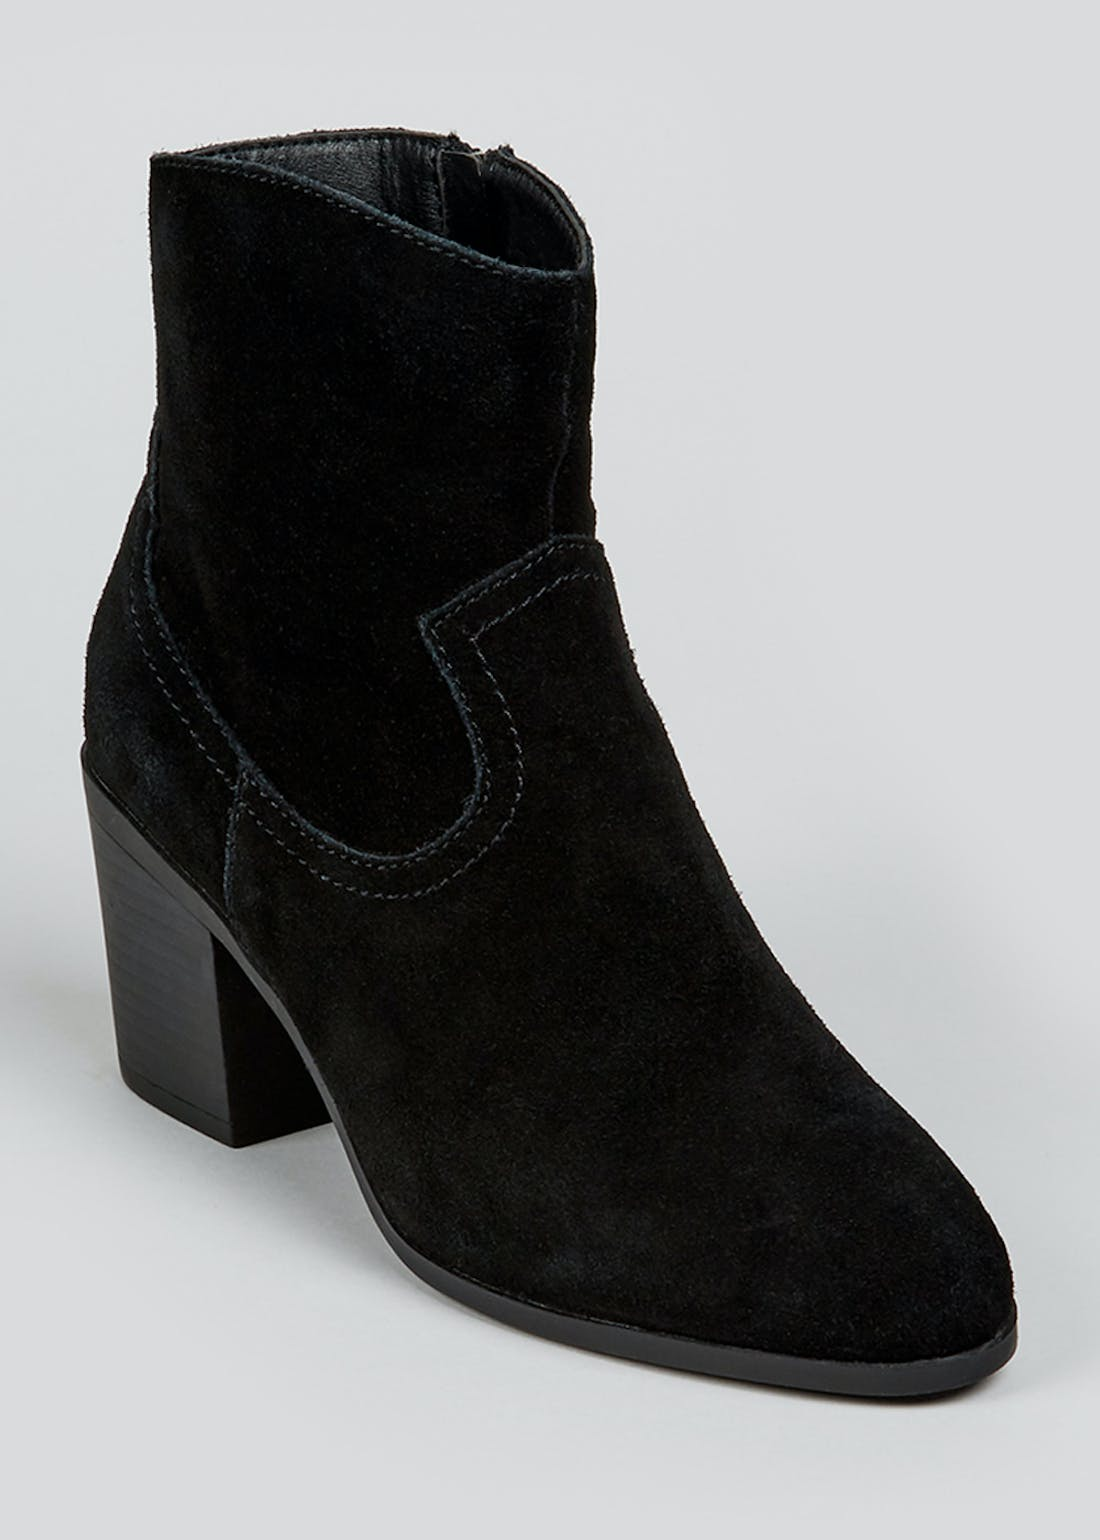 Soleflex Black Real Suede Western Boots